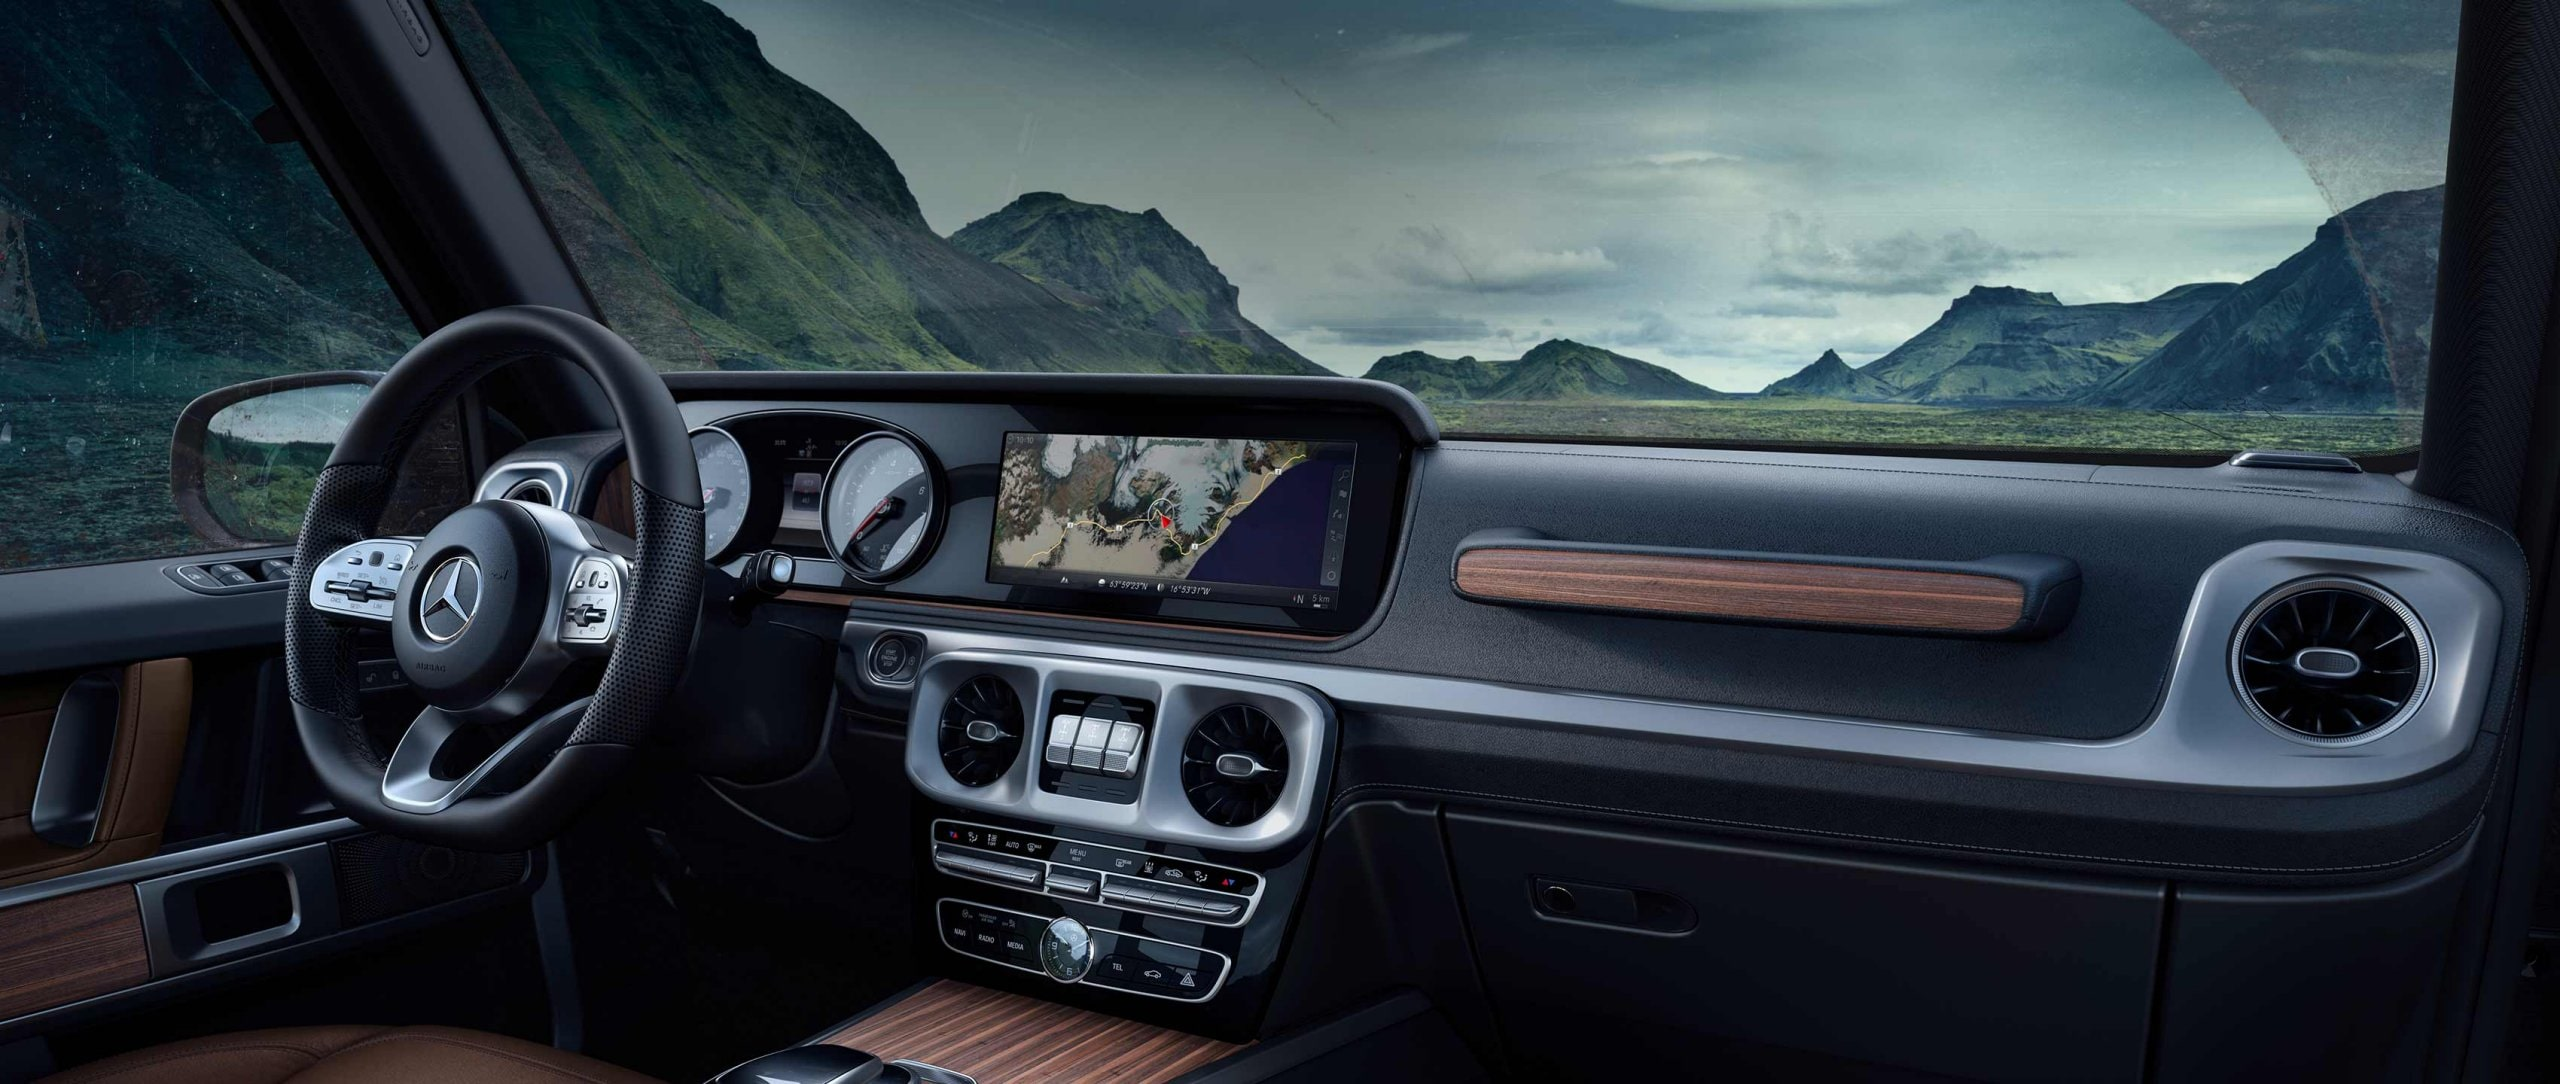 With its completely updated interior and numerous new features, the Mercedes-Benz G-Class has now undergone the most significant transformation of its almost 40-year career.